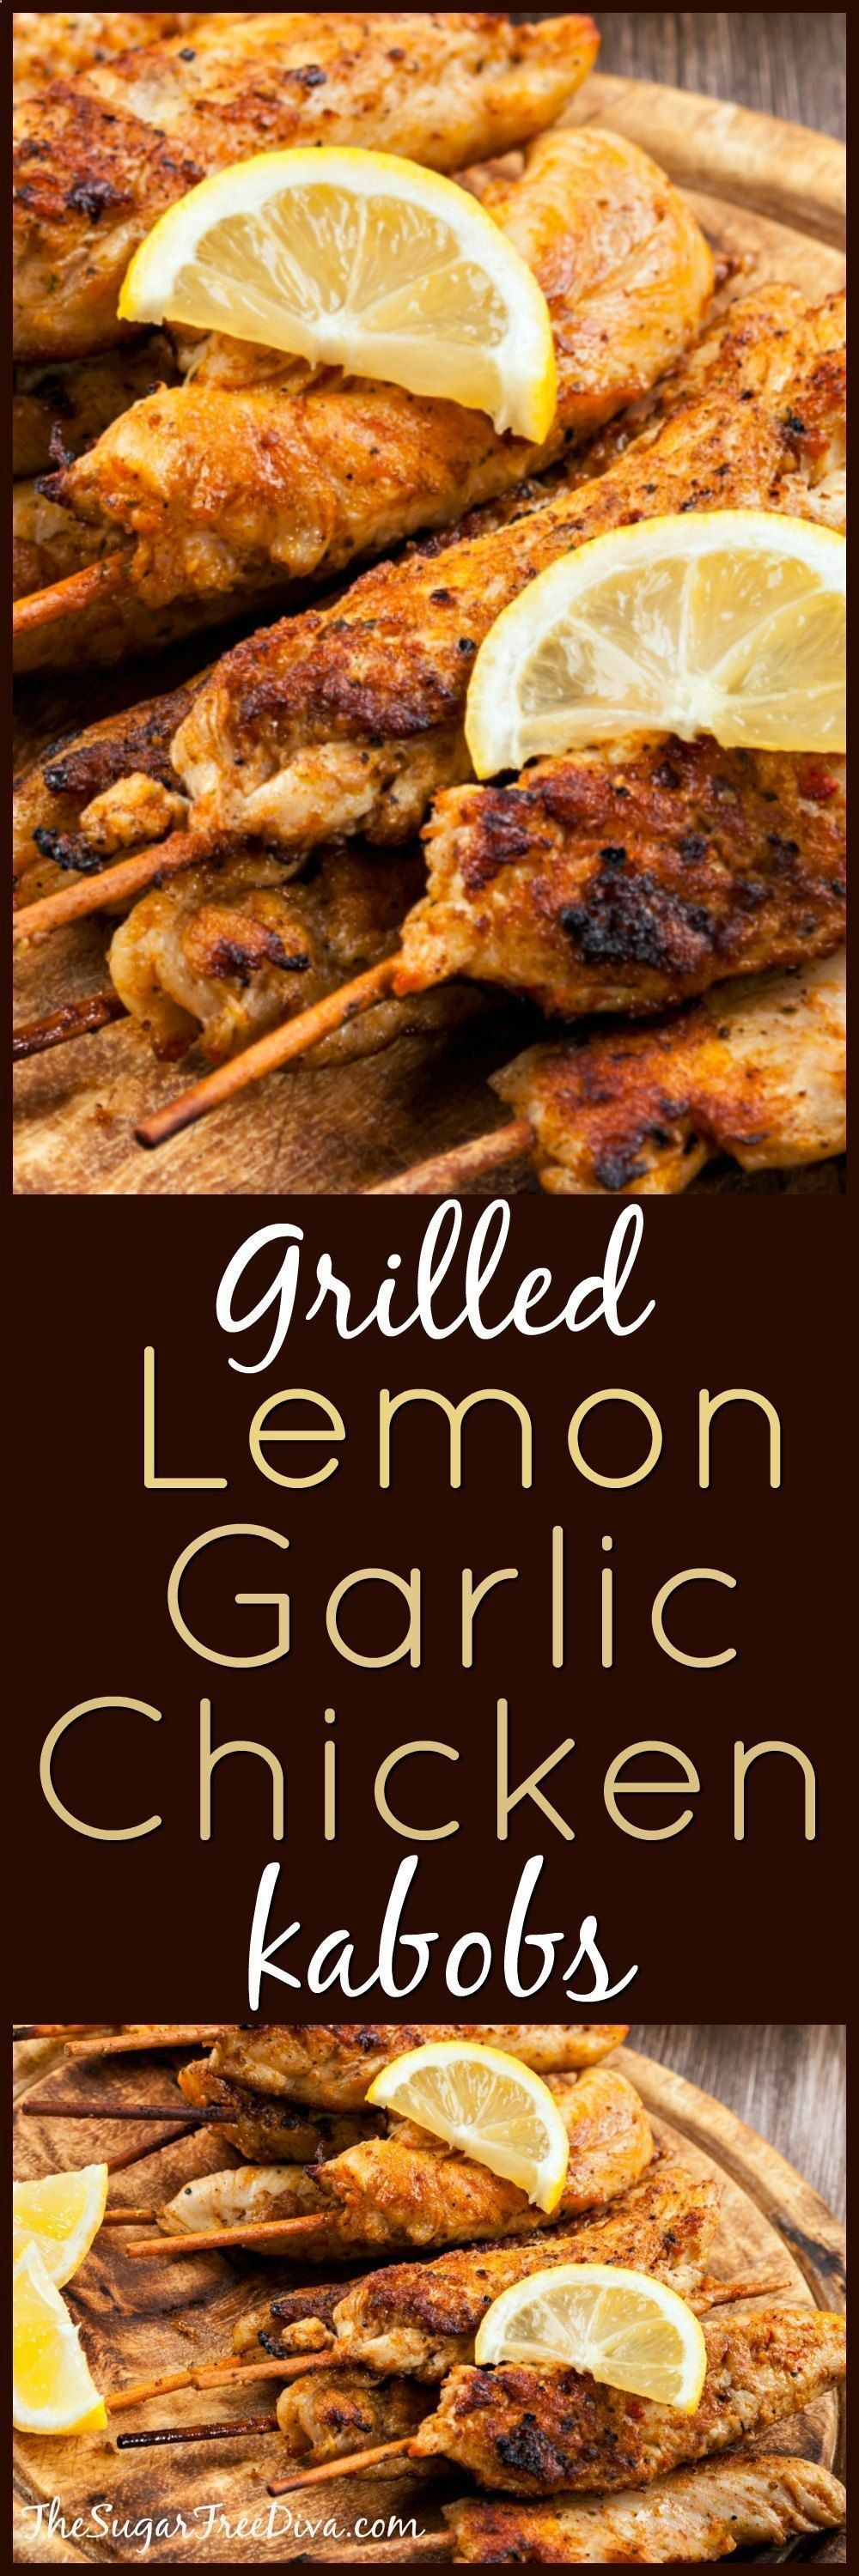 Grilled Lemon Garlic Chicken Kabobs - This recipe from THE SUGAR FREE DIVA is easy to follow and delicious to eat! whole30 grilling recipes;grilling recipes dinner;grilling dishes;grilling recipes healthy;grilling recipes veggies;recipes for grilling;grilling tip;grilling healthy;grilling recipes easy;grilling onions;grilling recipes chicken;grilling recipes meat;grilling recipes sides;healthy grilling recipes;meat grilling recipes;healthy grilling;grilling chicken breastrecipes;grilli... #chick #chickenbreastrecipeseasy